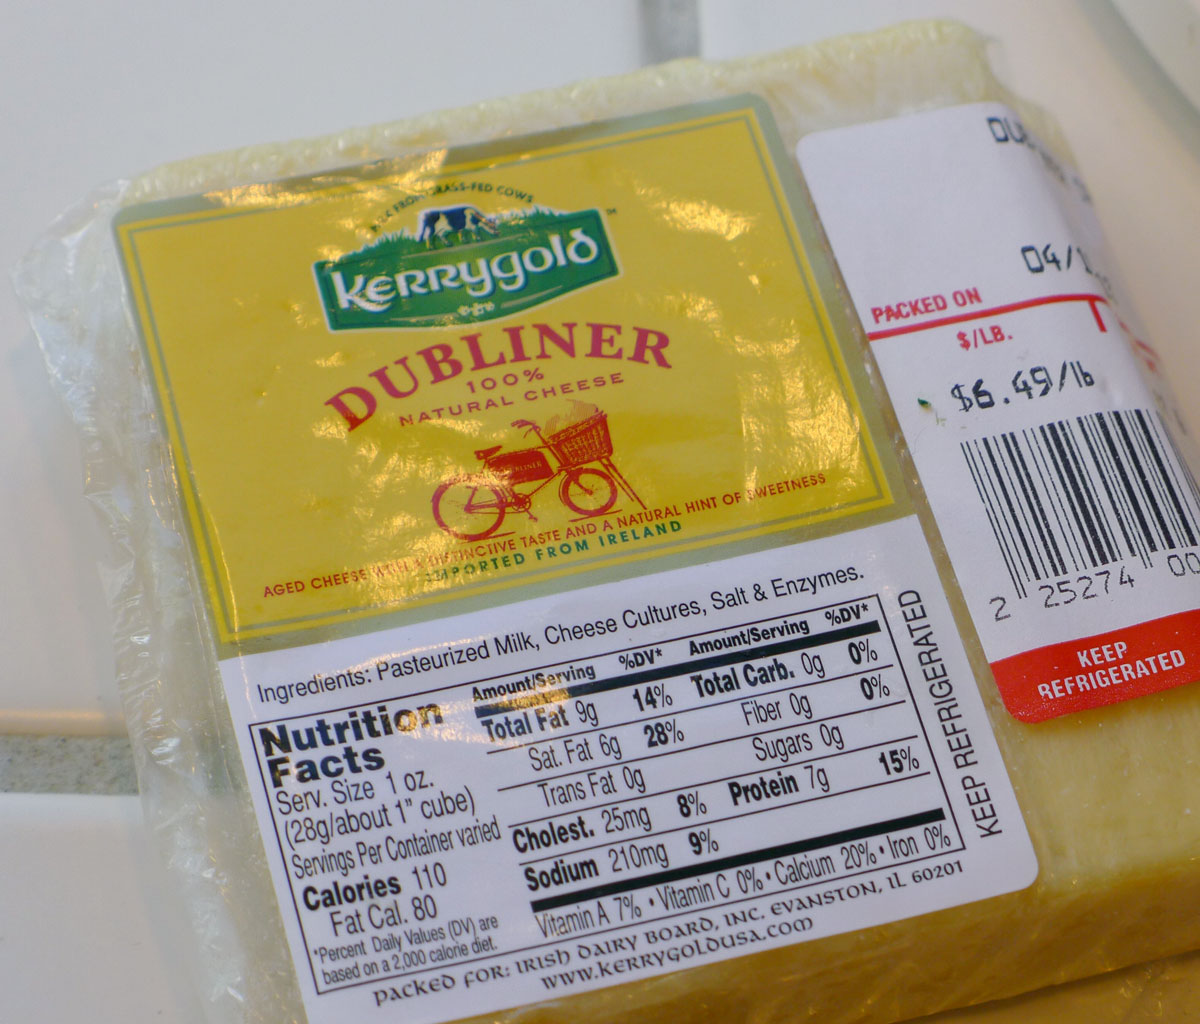 super delicious cheese: Dubliner